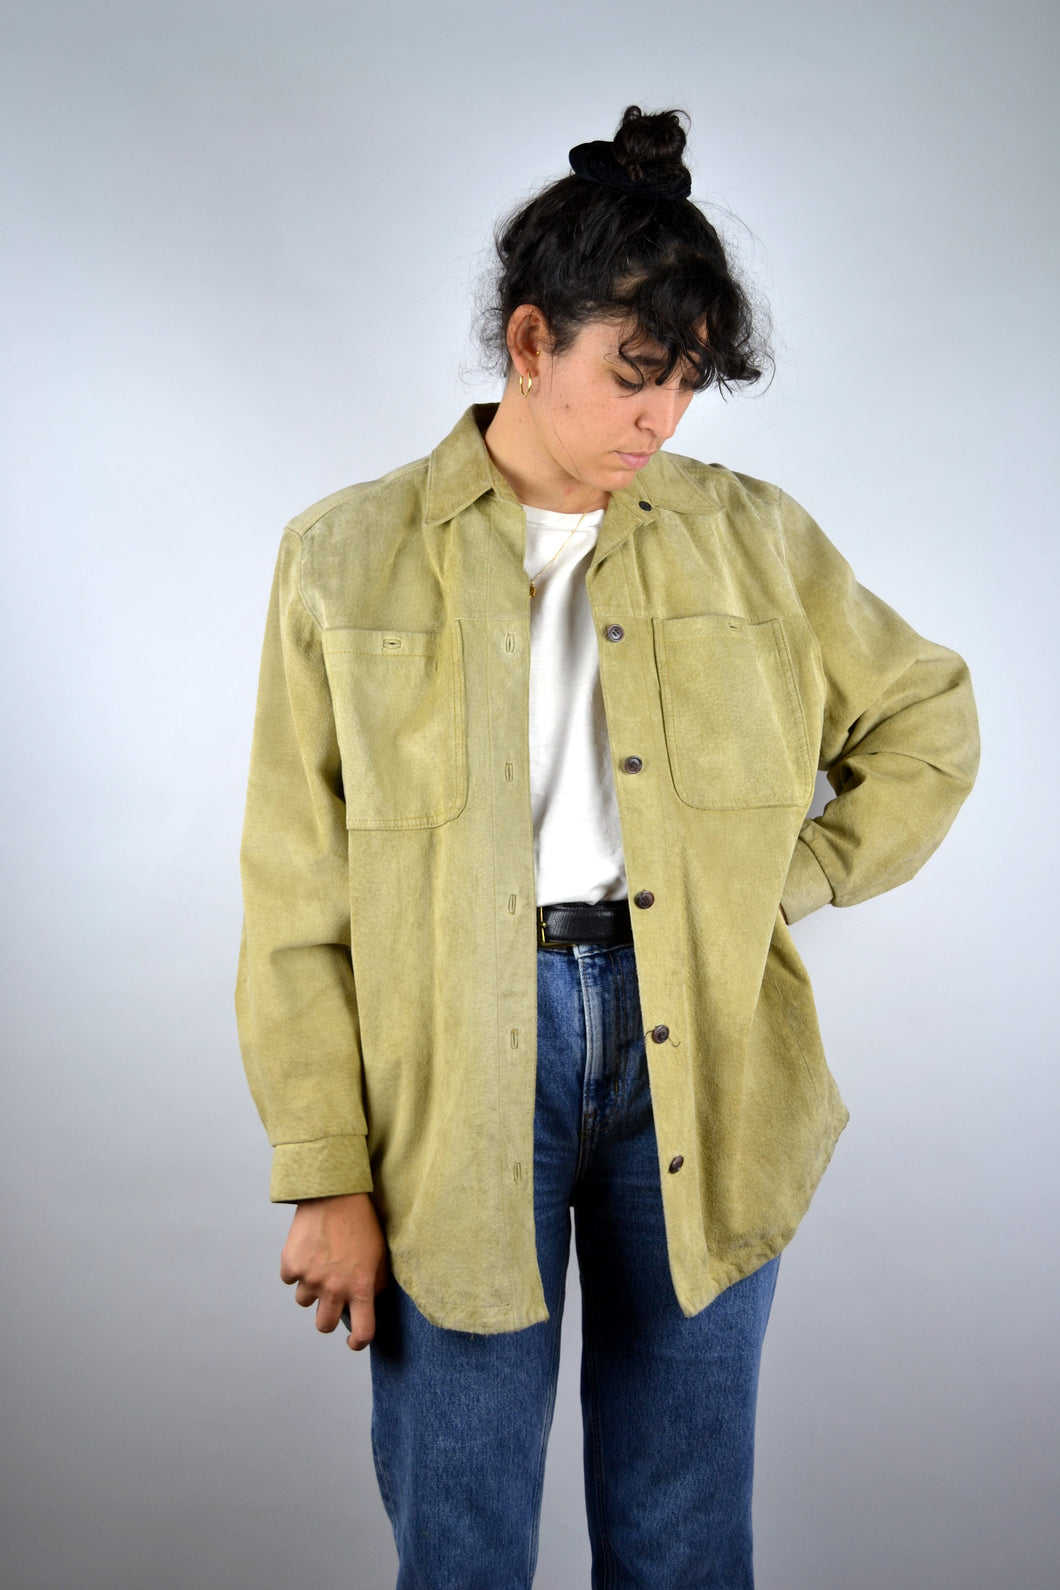 Long Beige Suede Jacket Vintage 70s Medium M